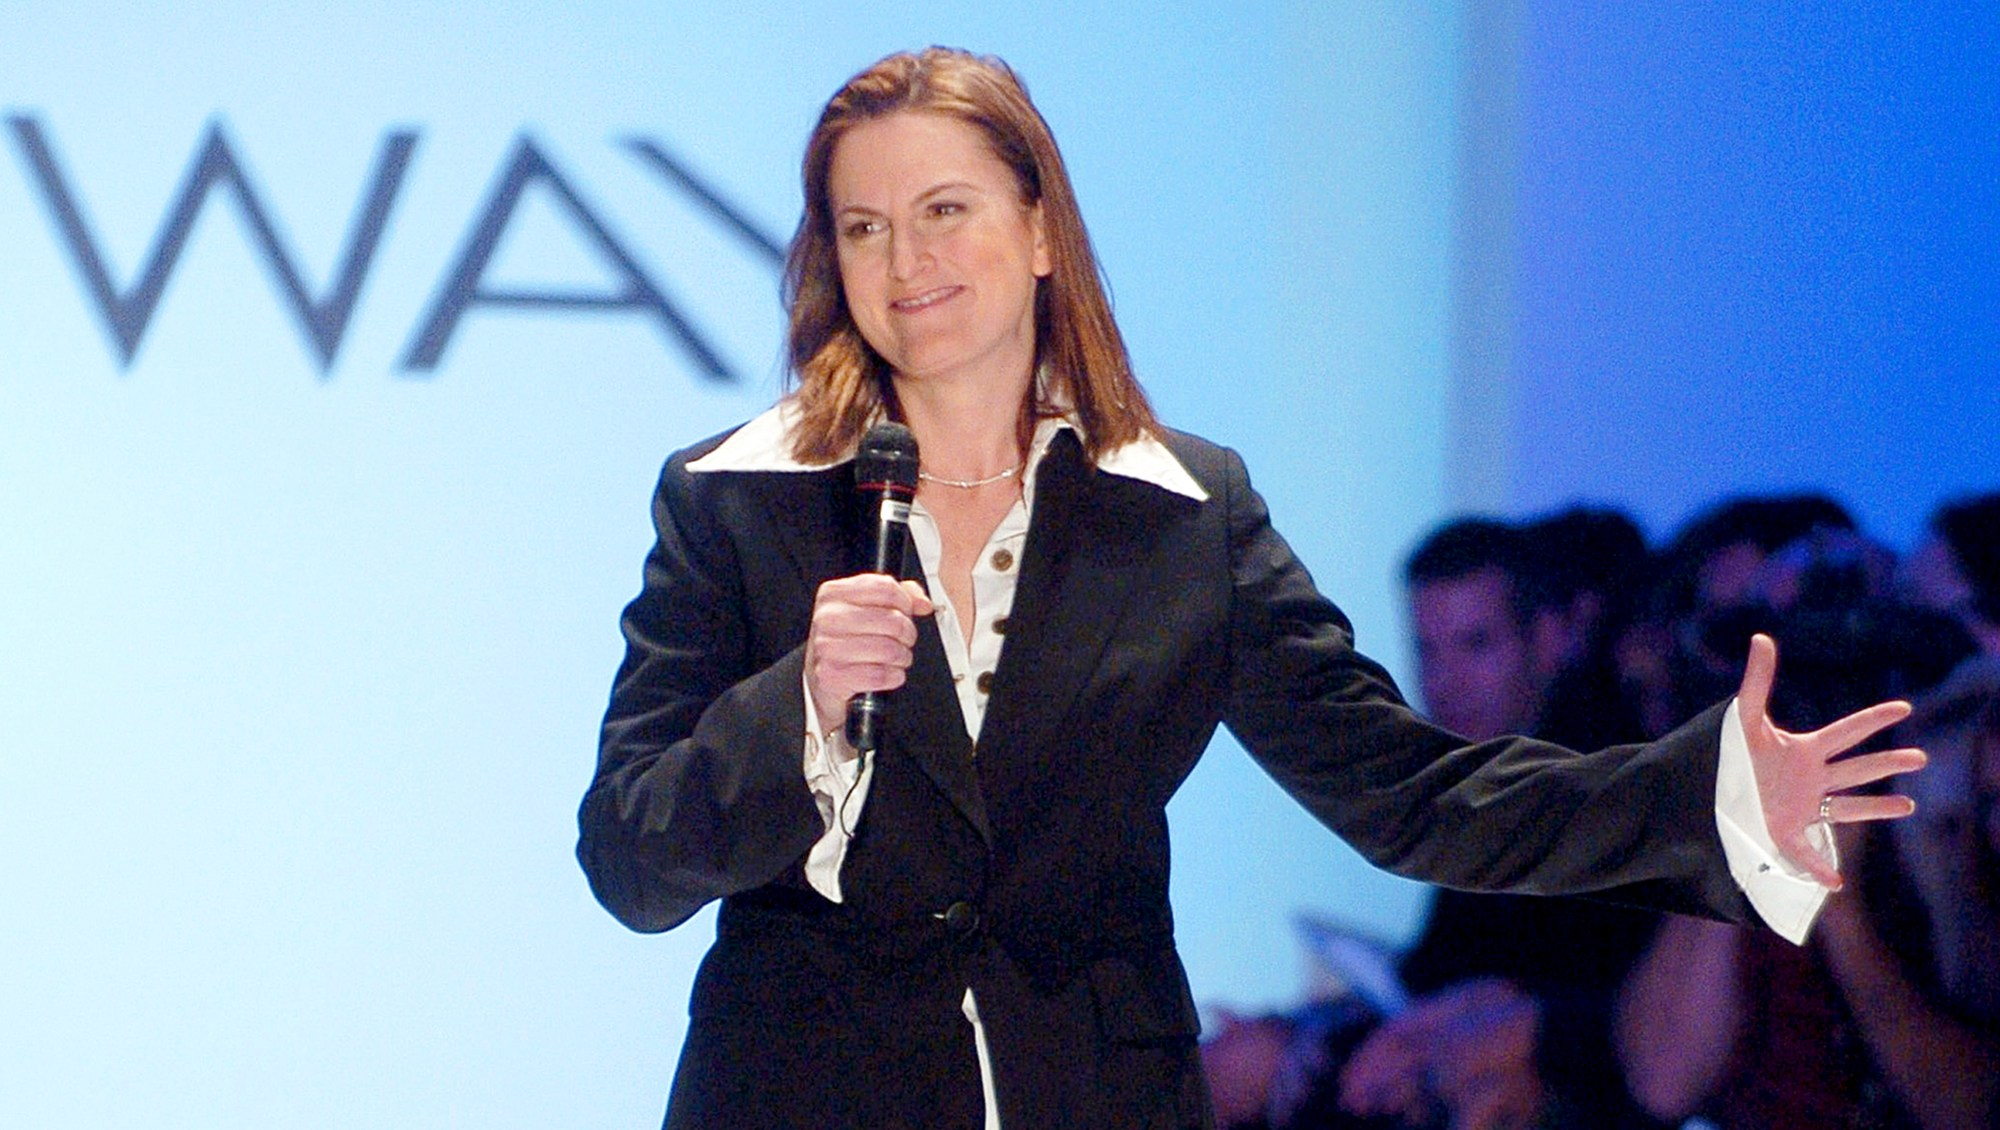 Wendy Pepper during Olympus Fashion Week Fall 2005 at The Plaza, Bryant Park in New York City.